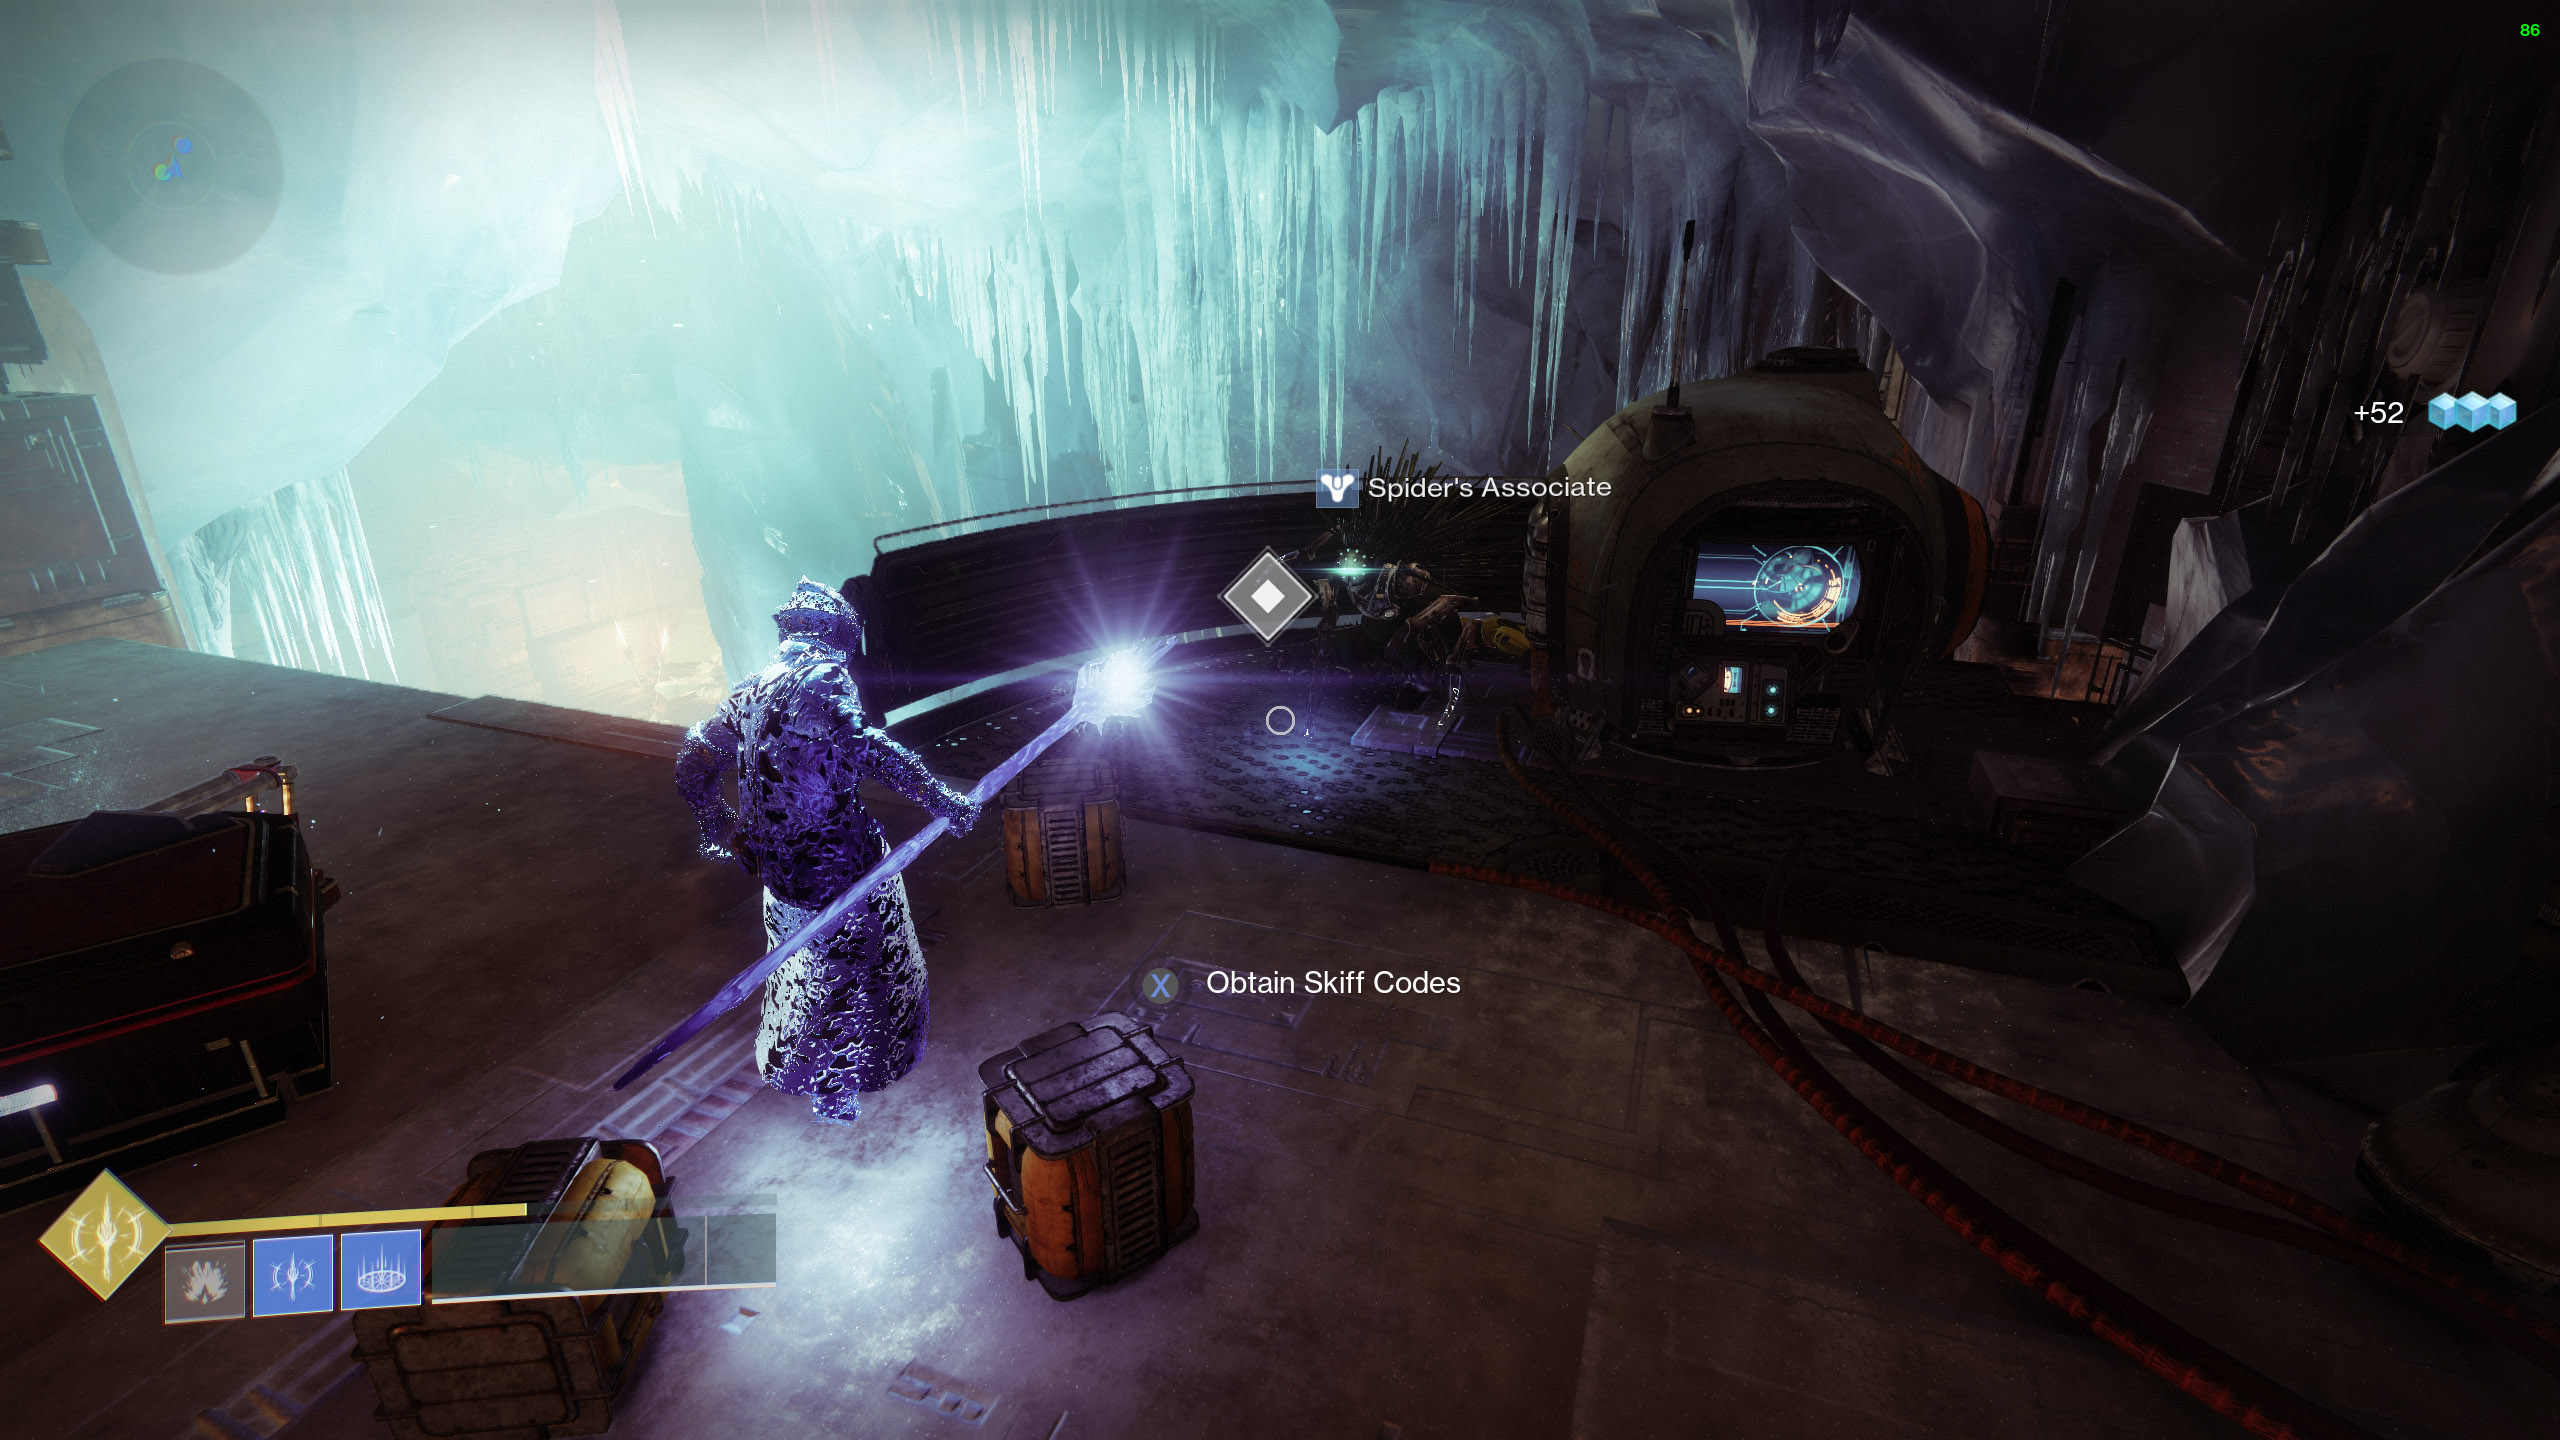 destiny 2 the stasis prototype concealed void spider's associate